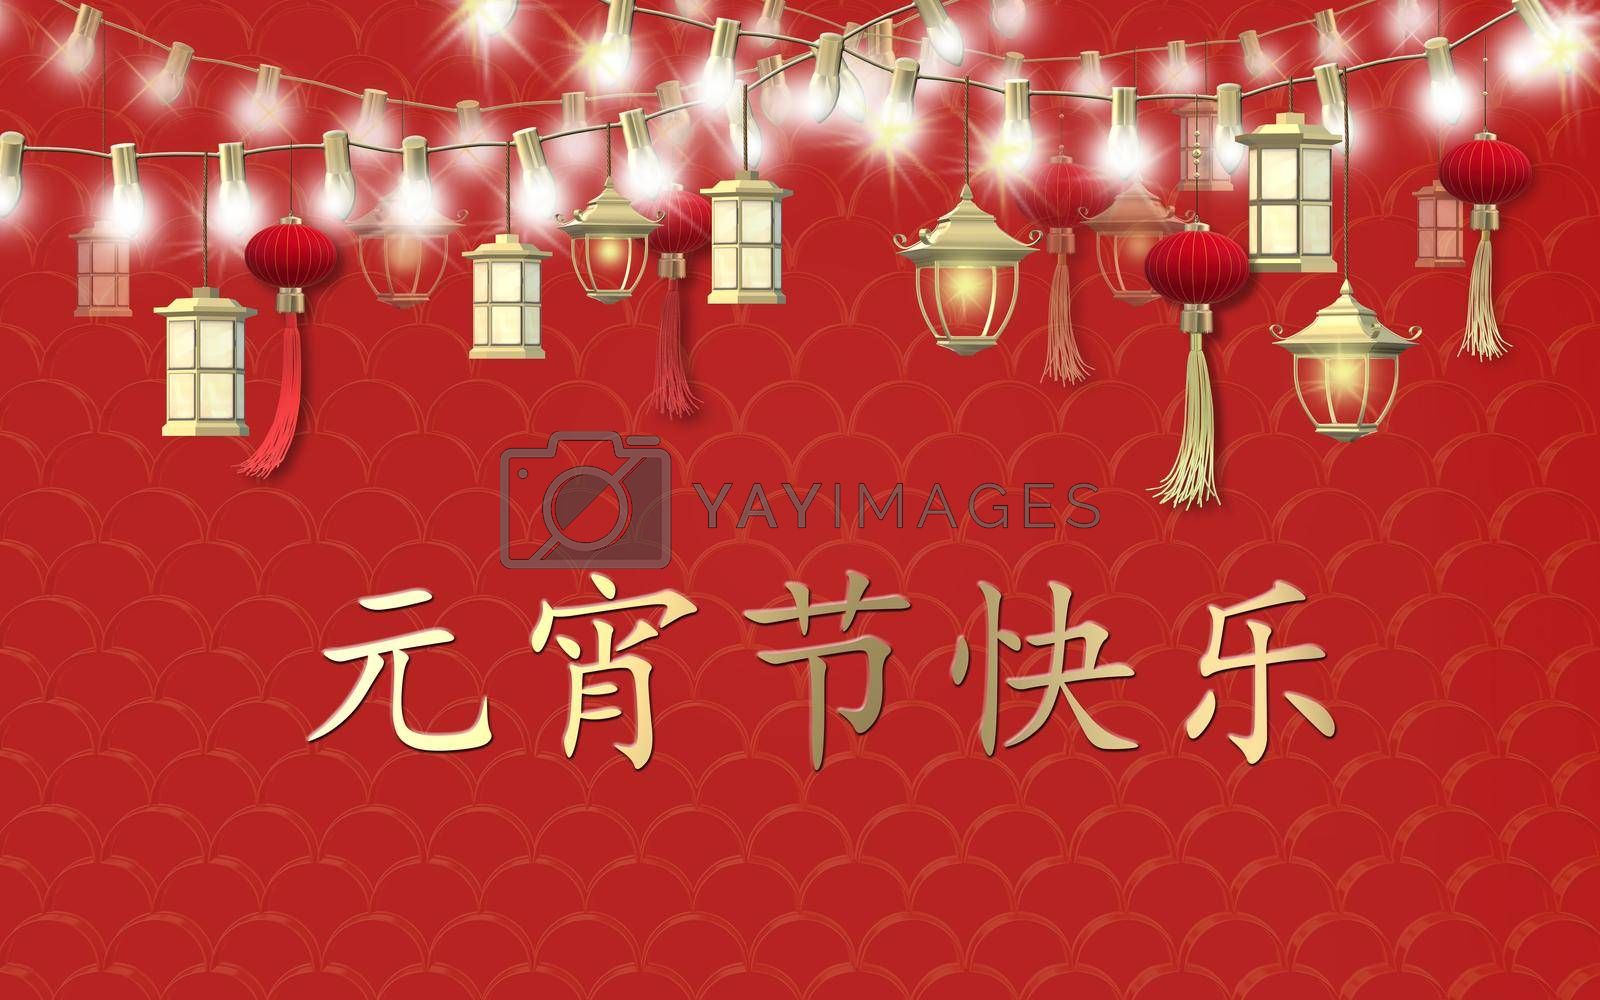 Happy Lantern festival. Spring Chinese festival design. Chinese text Happy Lantern festival. Oriental Asian traditional lanterns on string of lights on red background. Place for text, 3D illustration